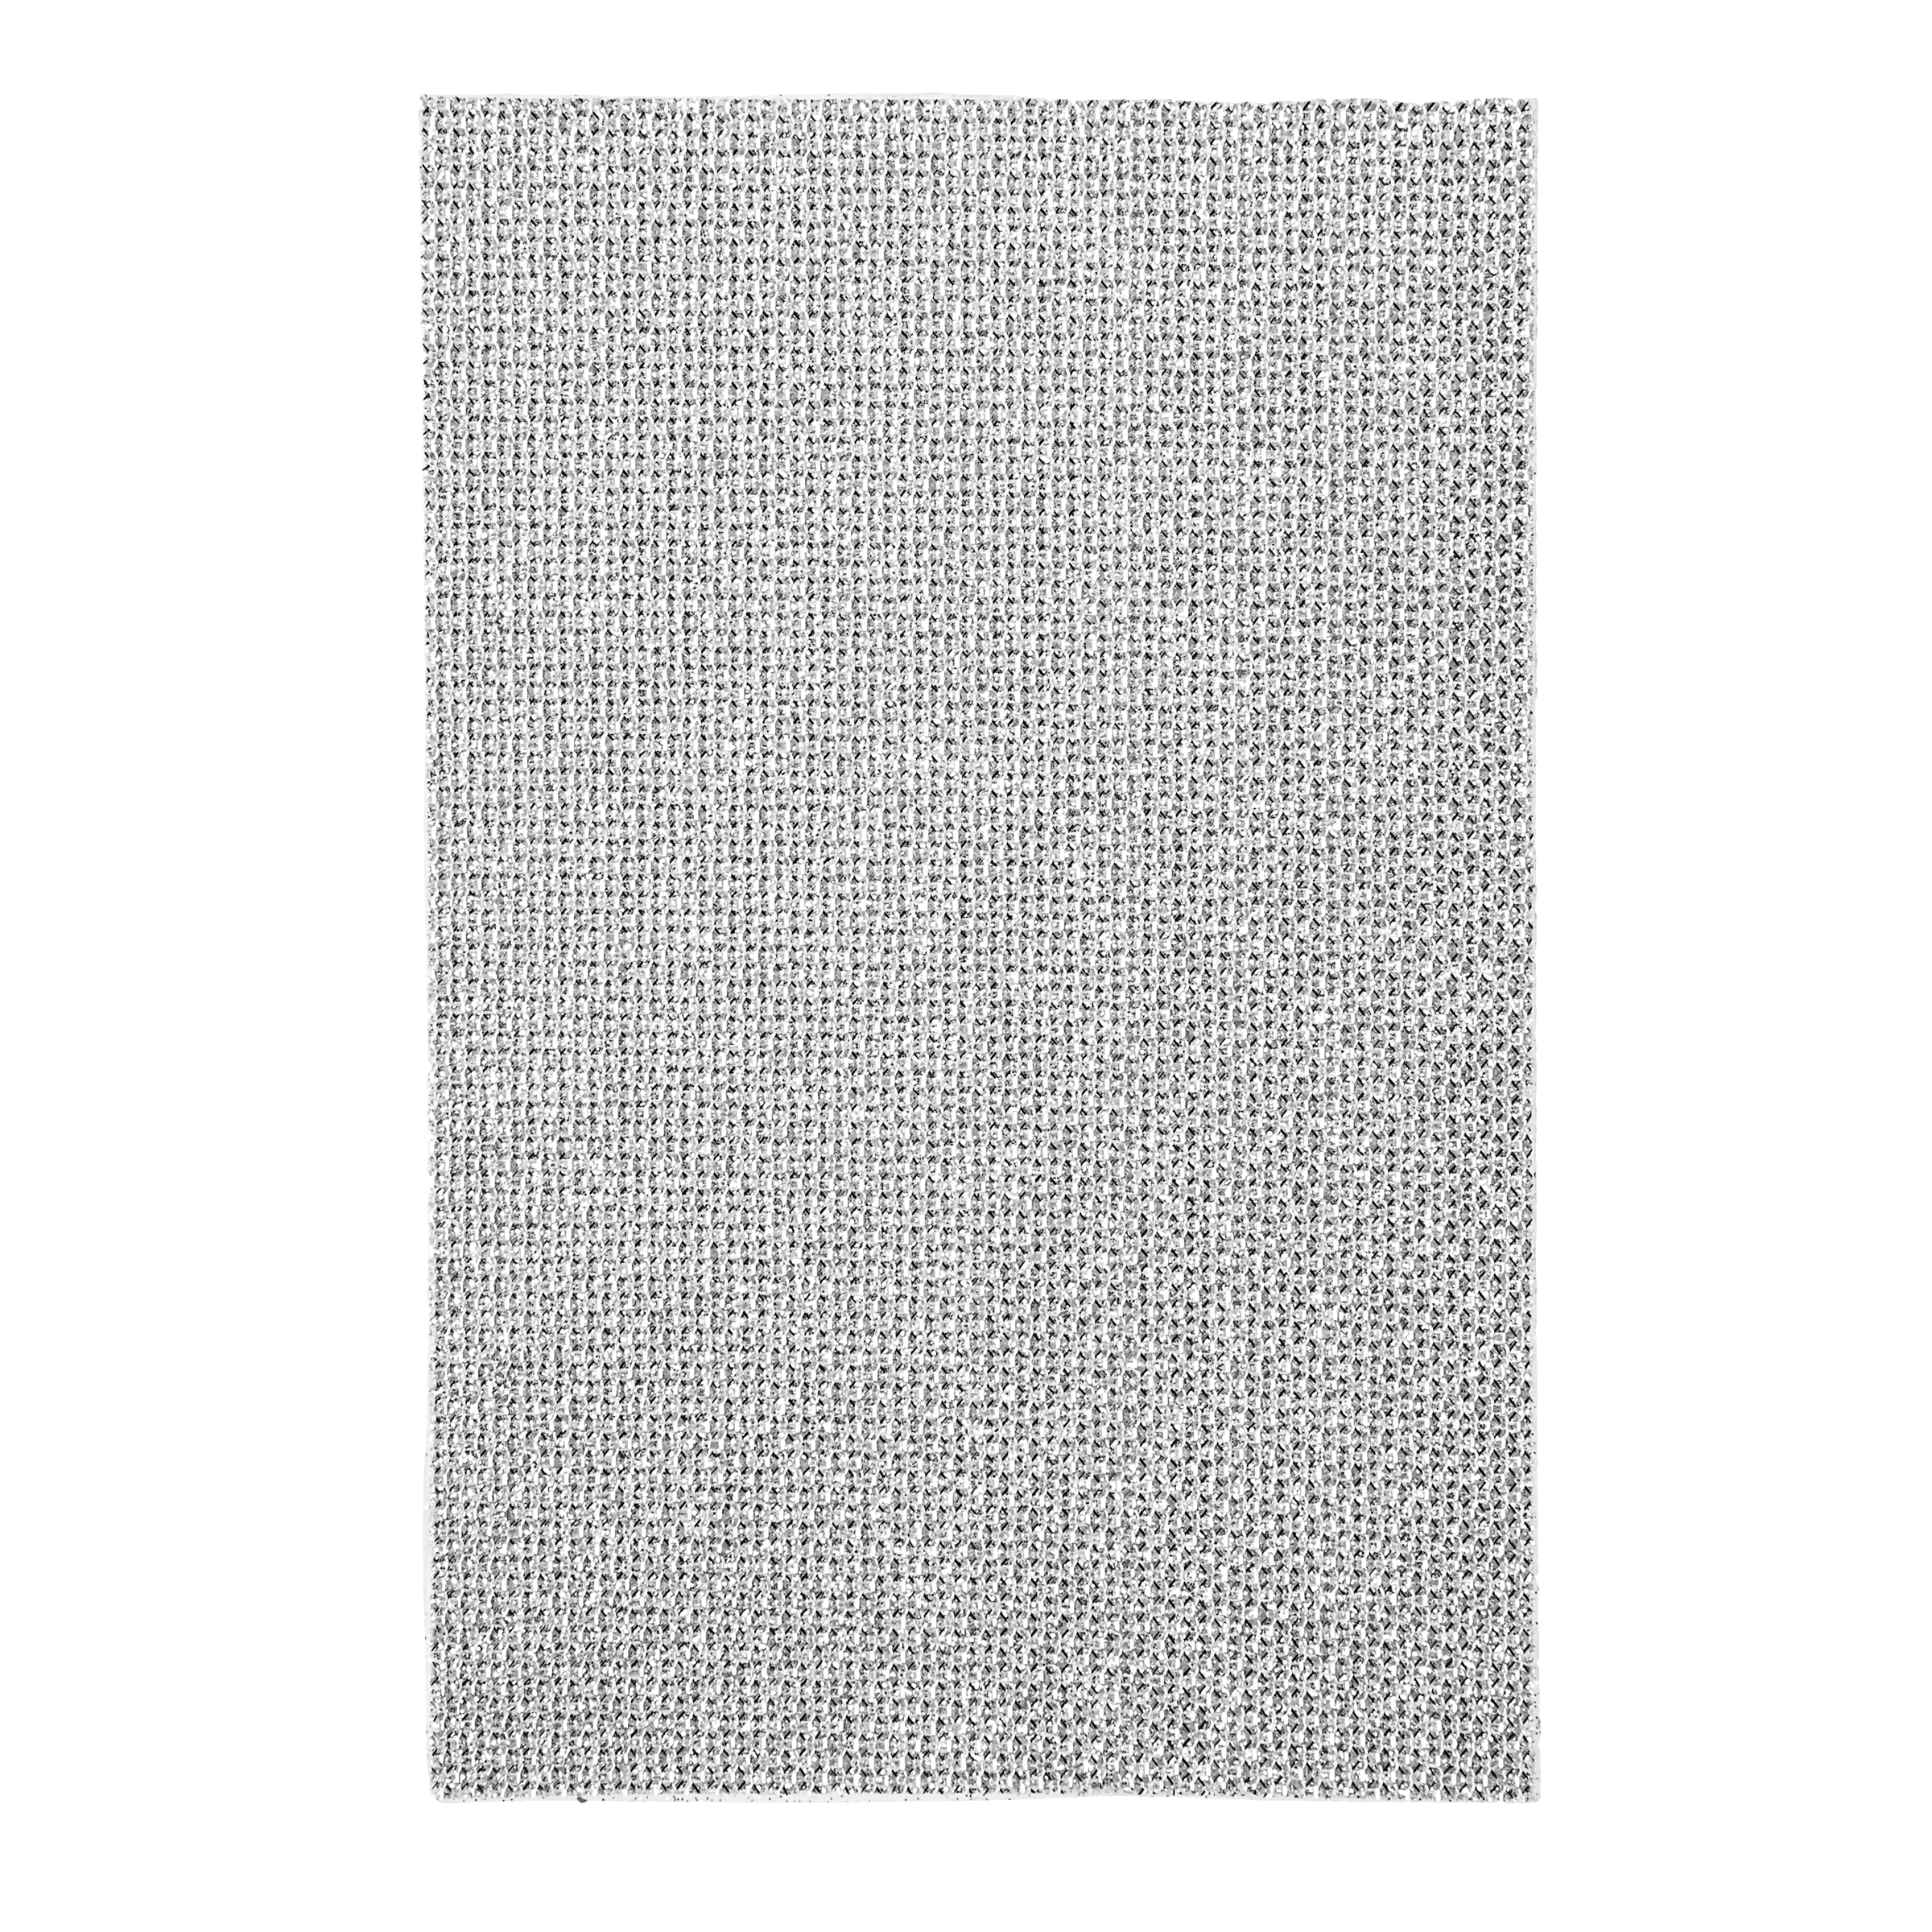 Darice David Tutera Illusion Shimmer Adhesive Mesh Light Silver